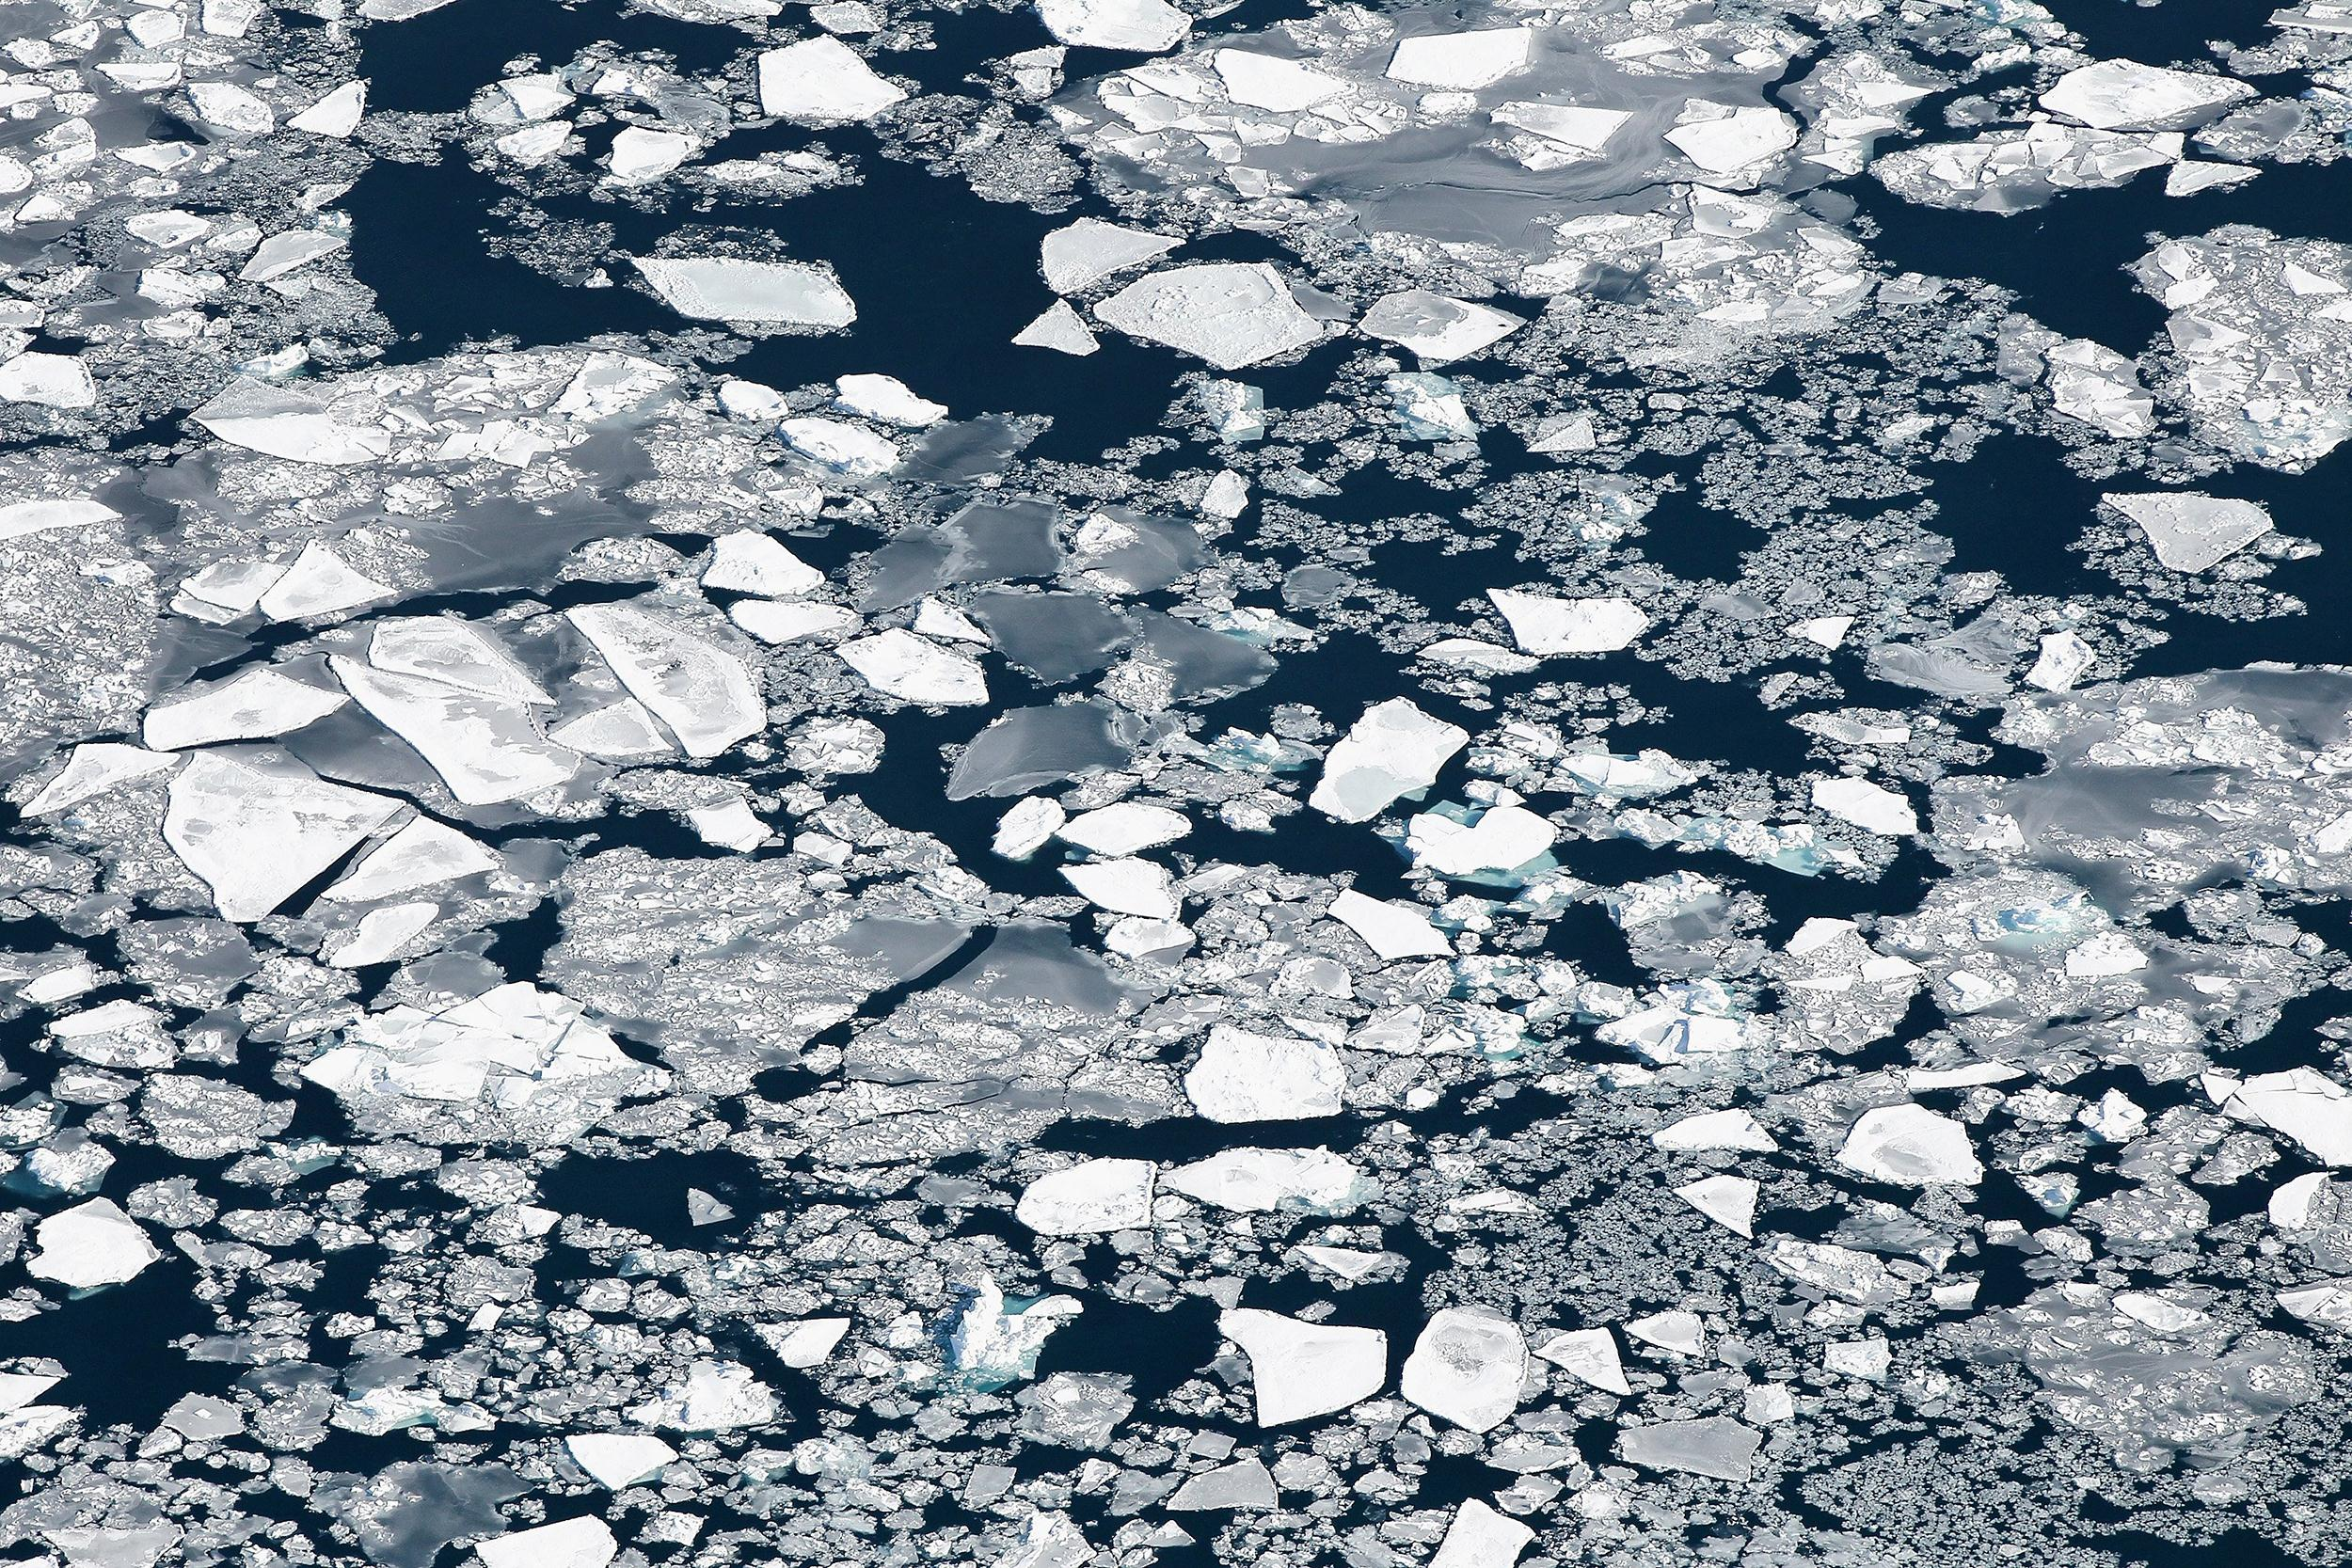 Image: Ice covers Lake Michigan on Feb. 18, 2014 near Chicago, Illinois.